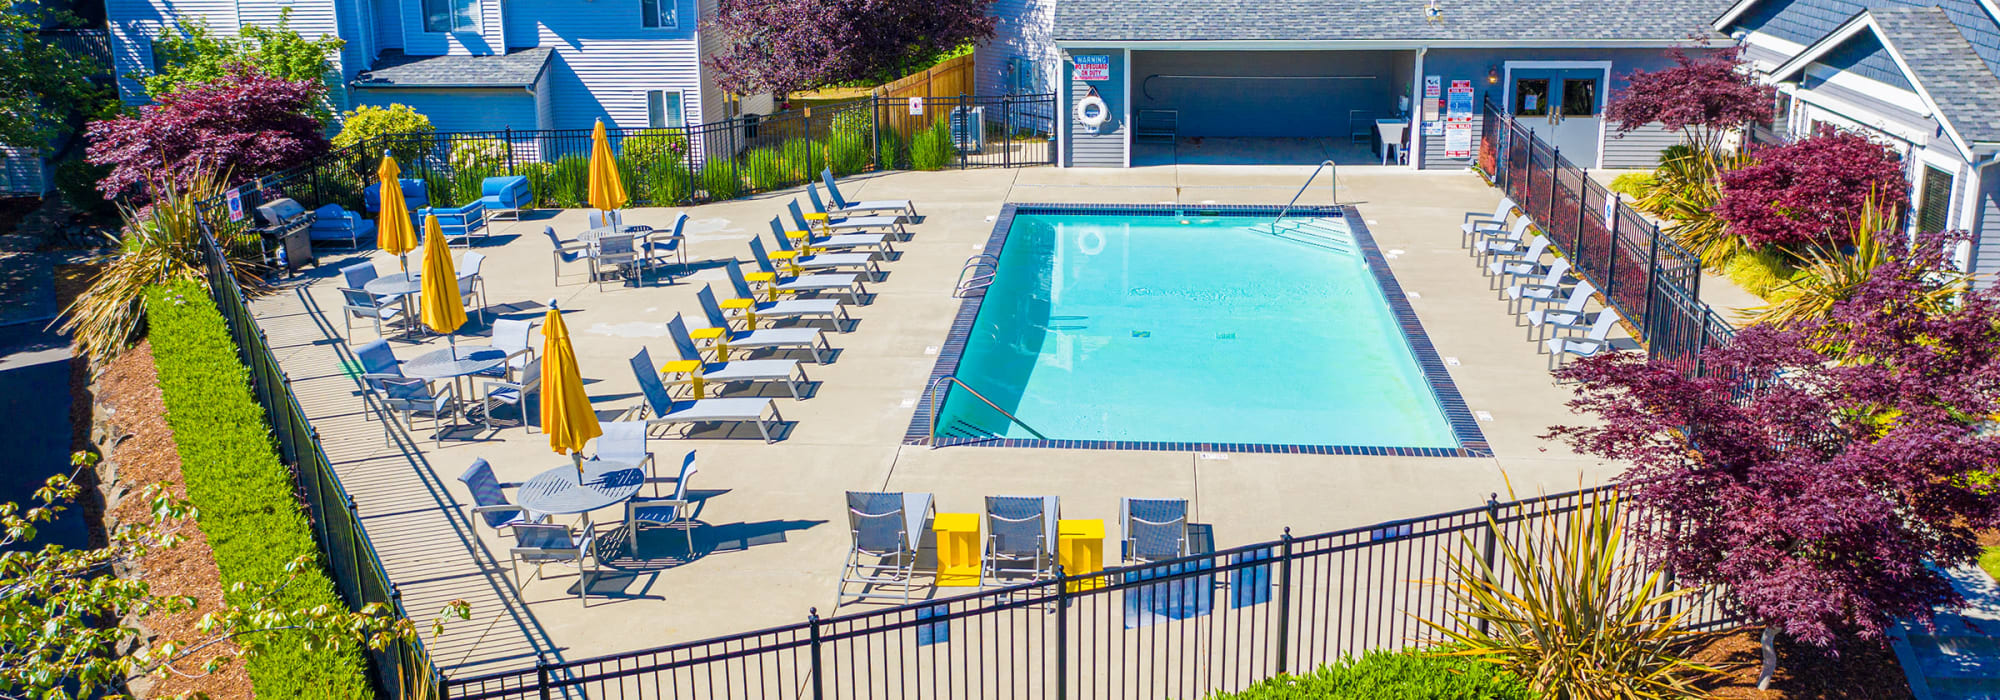 Amenities at Cascade Ridge in Silverdale, Washington